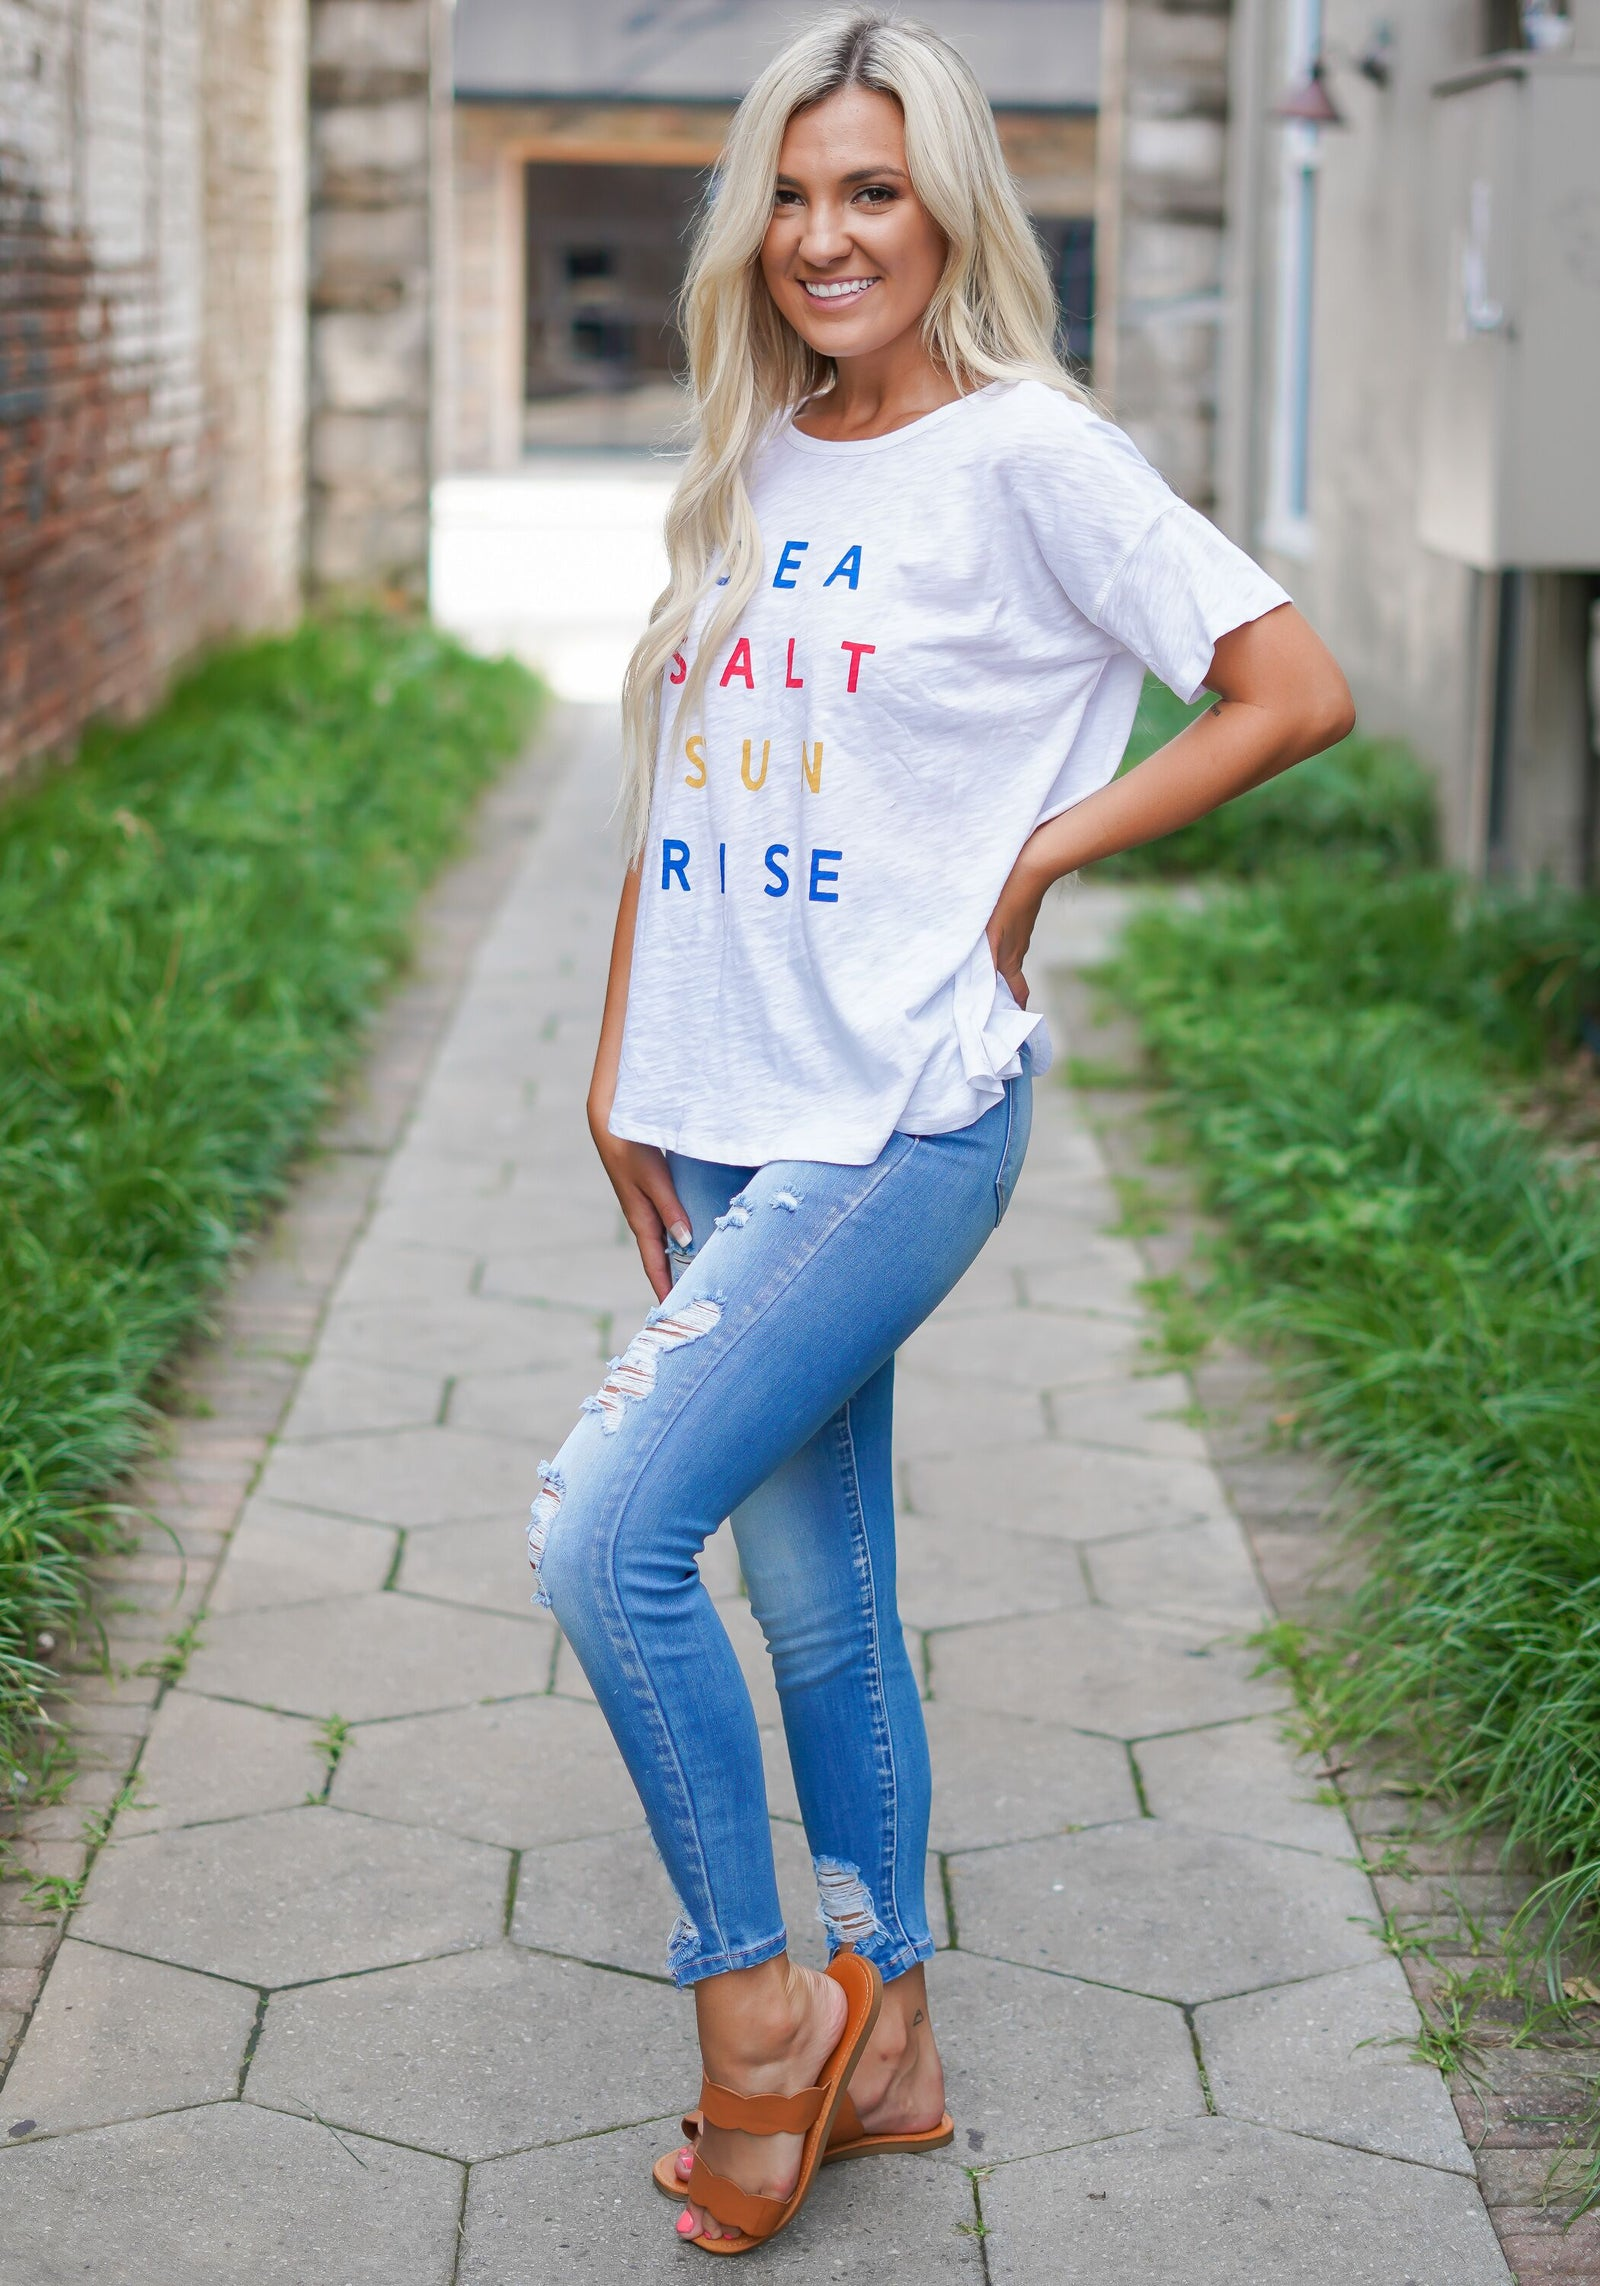 Sea Salt Sunrise Tee